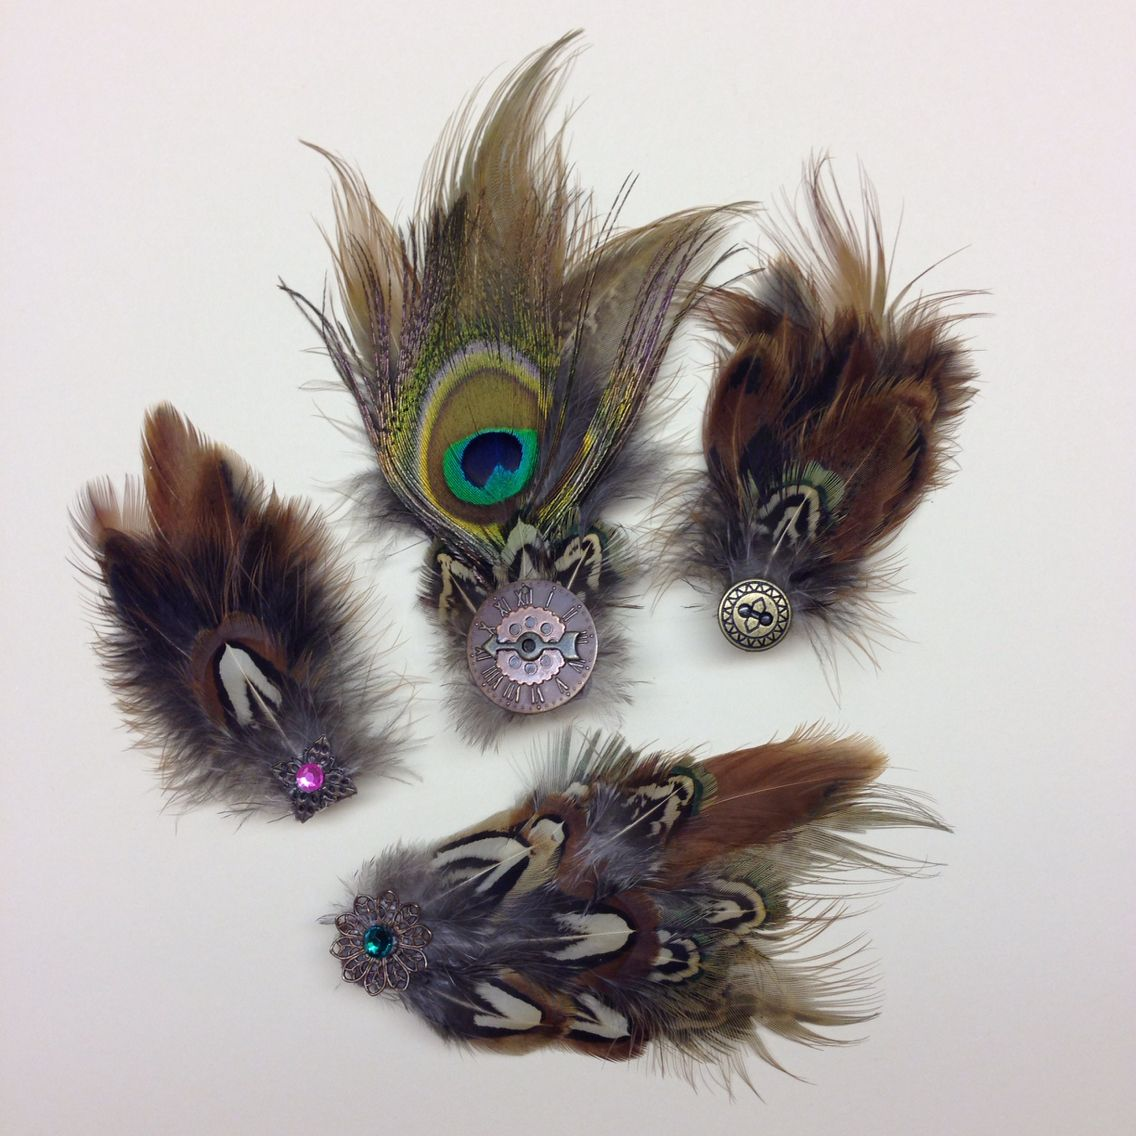 How to clean pheasant feathers - More Pheasant And Peacock Feather Barrettes For Avery And Adelyn